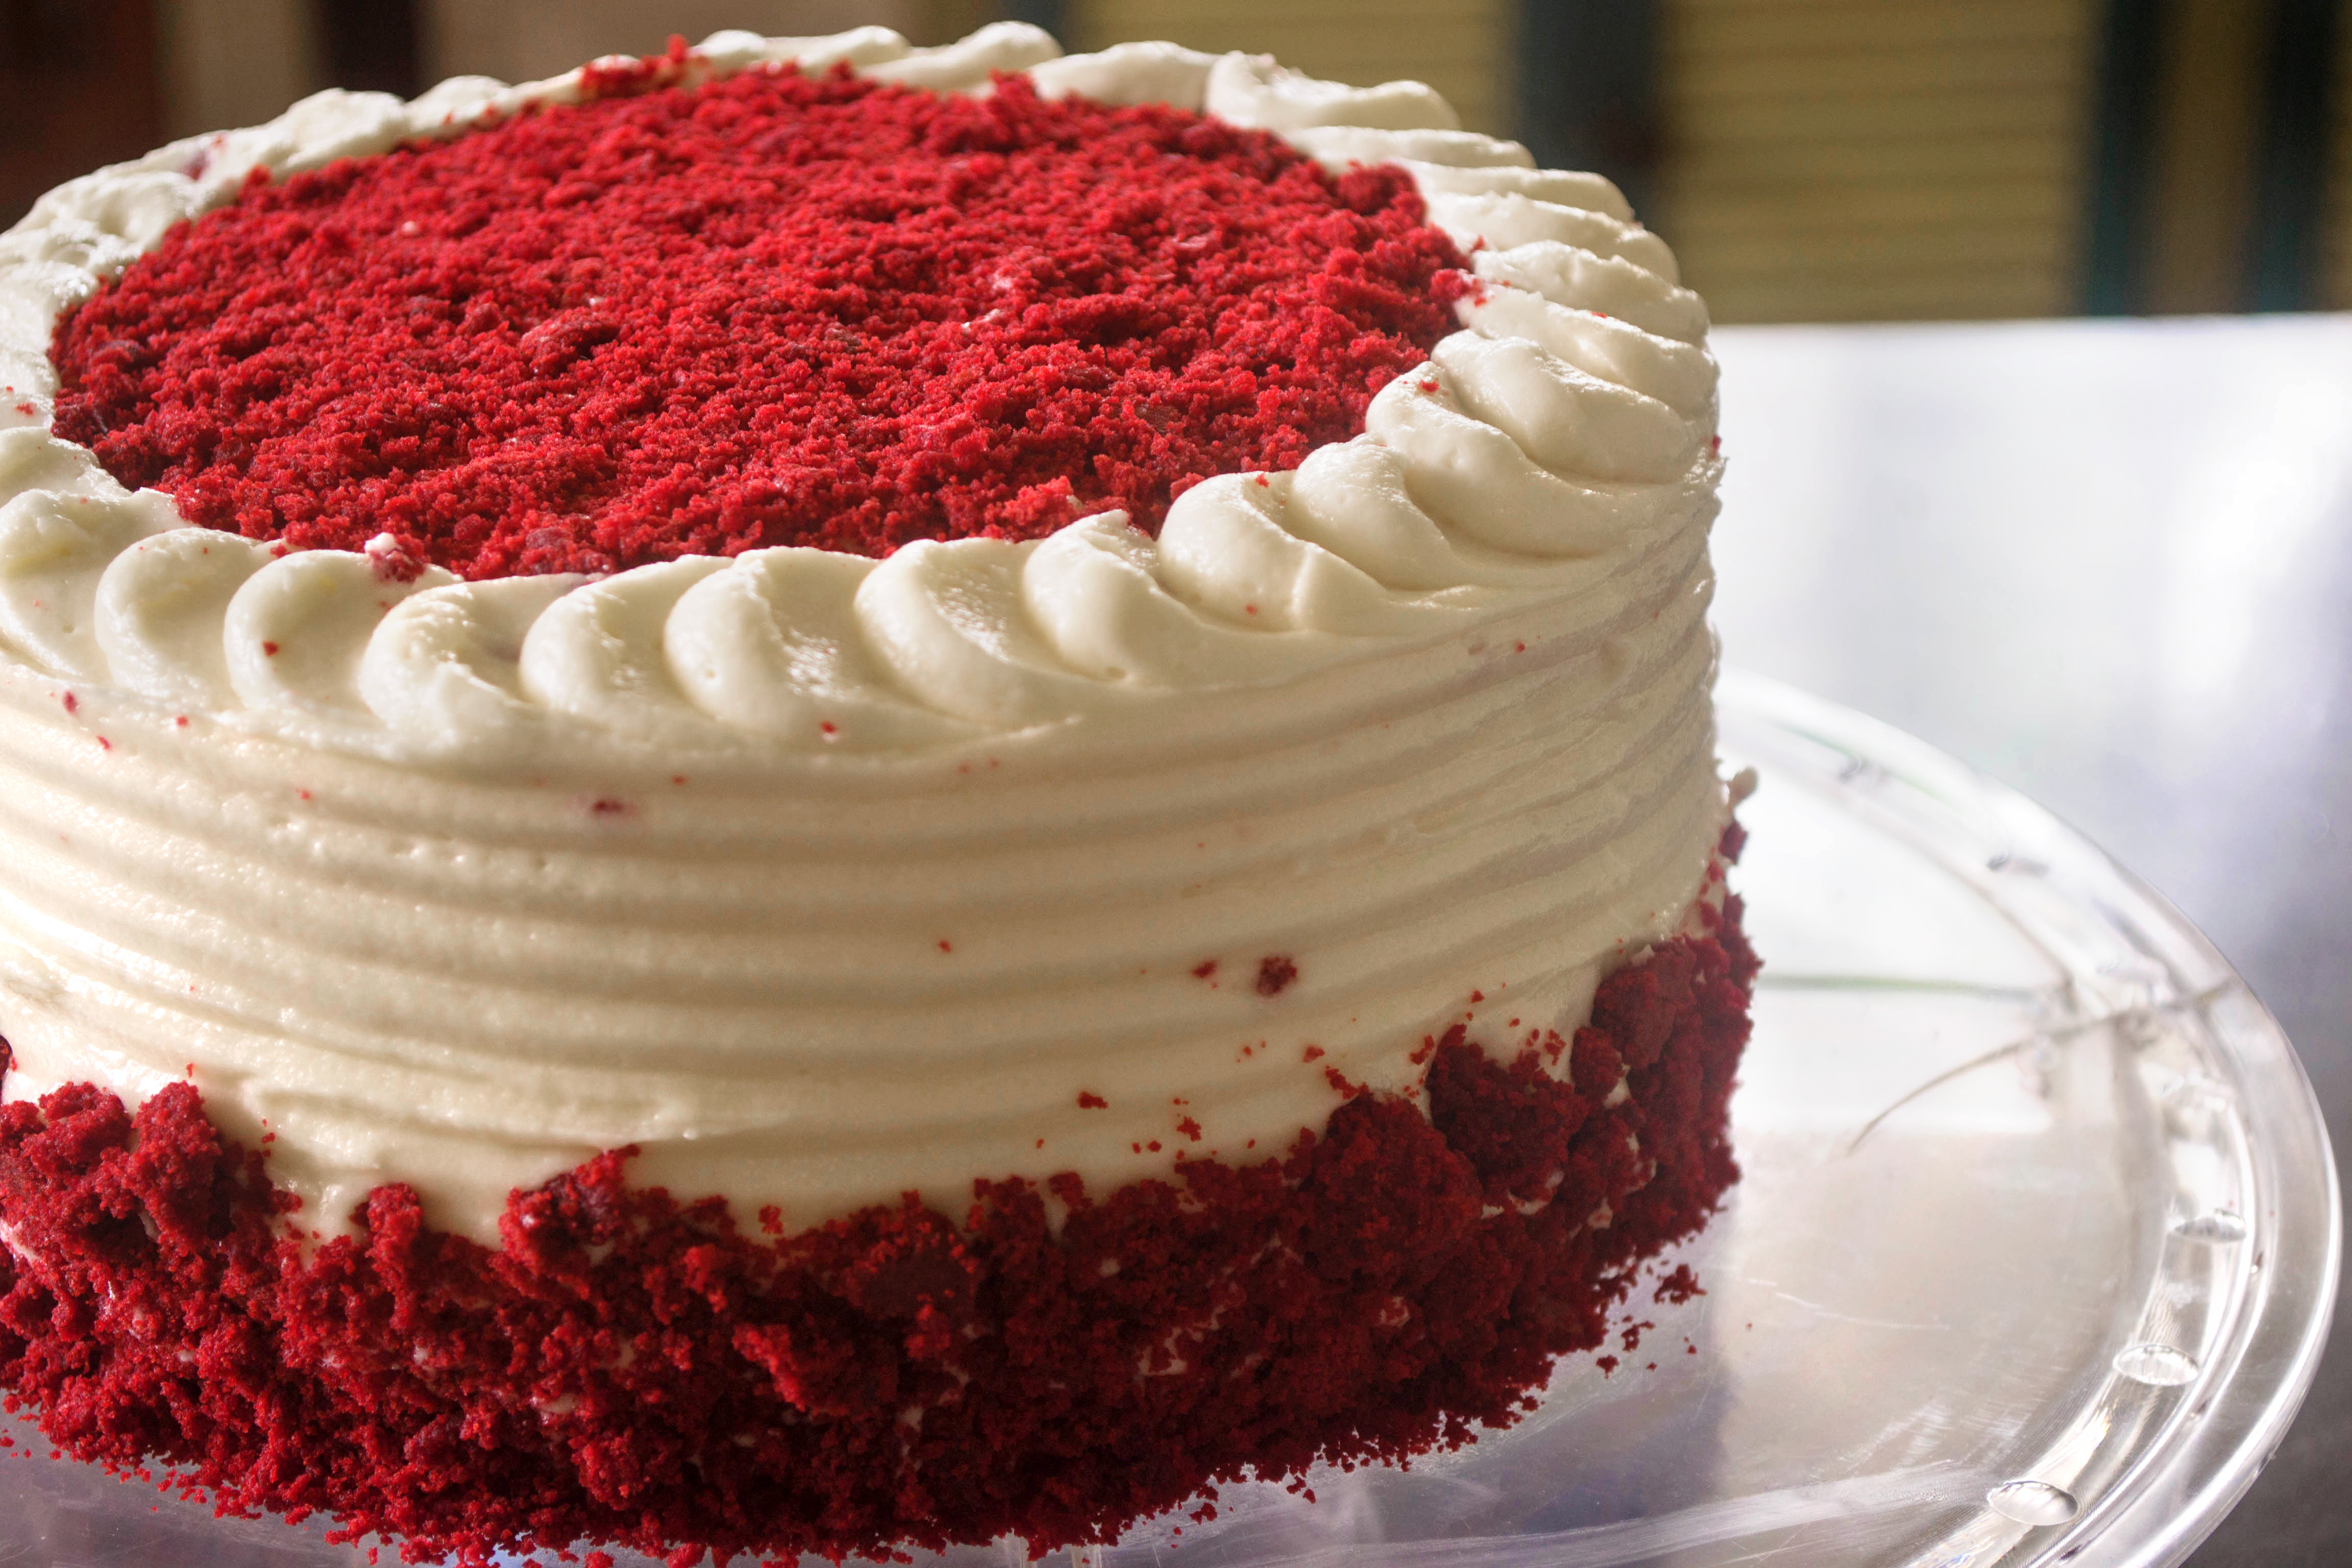 How to Decorate a Casual Cake in 20 Minutes: 8 Steps